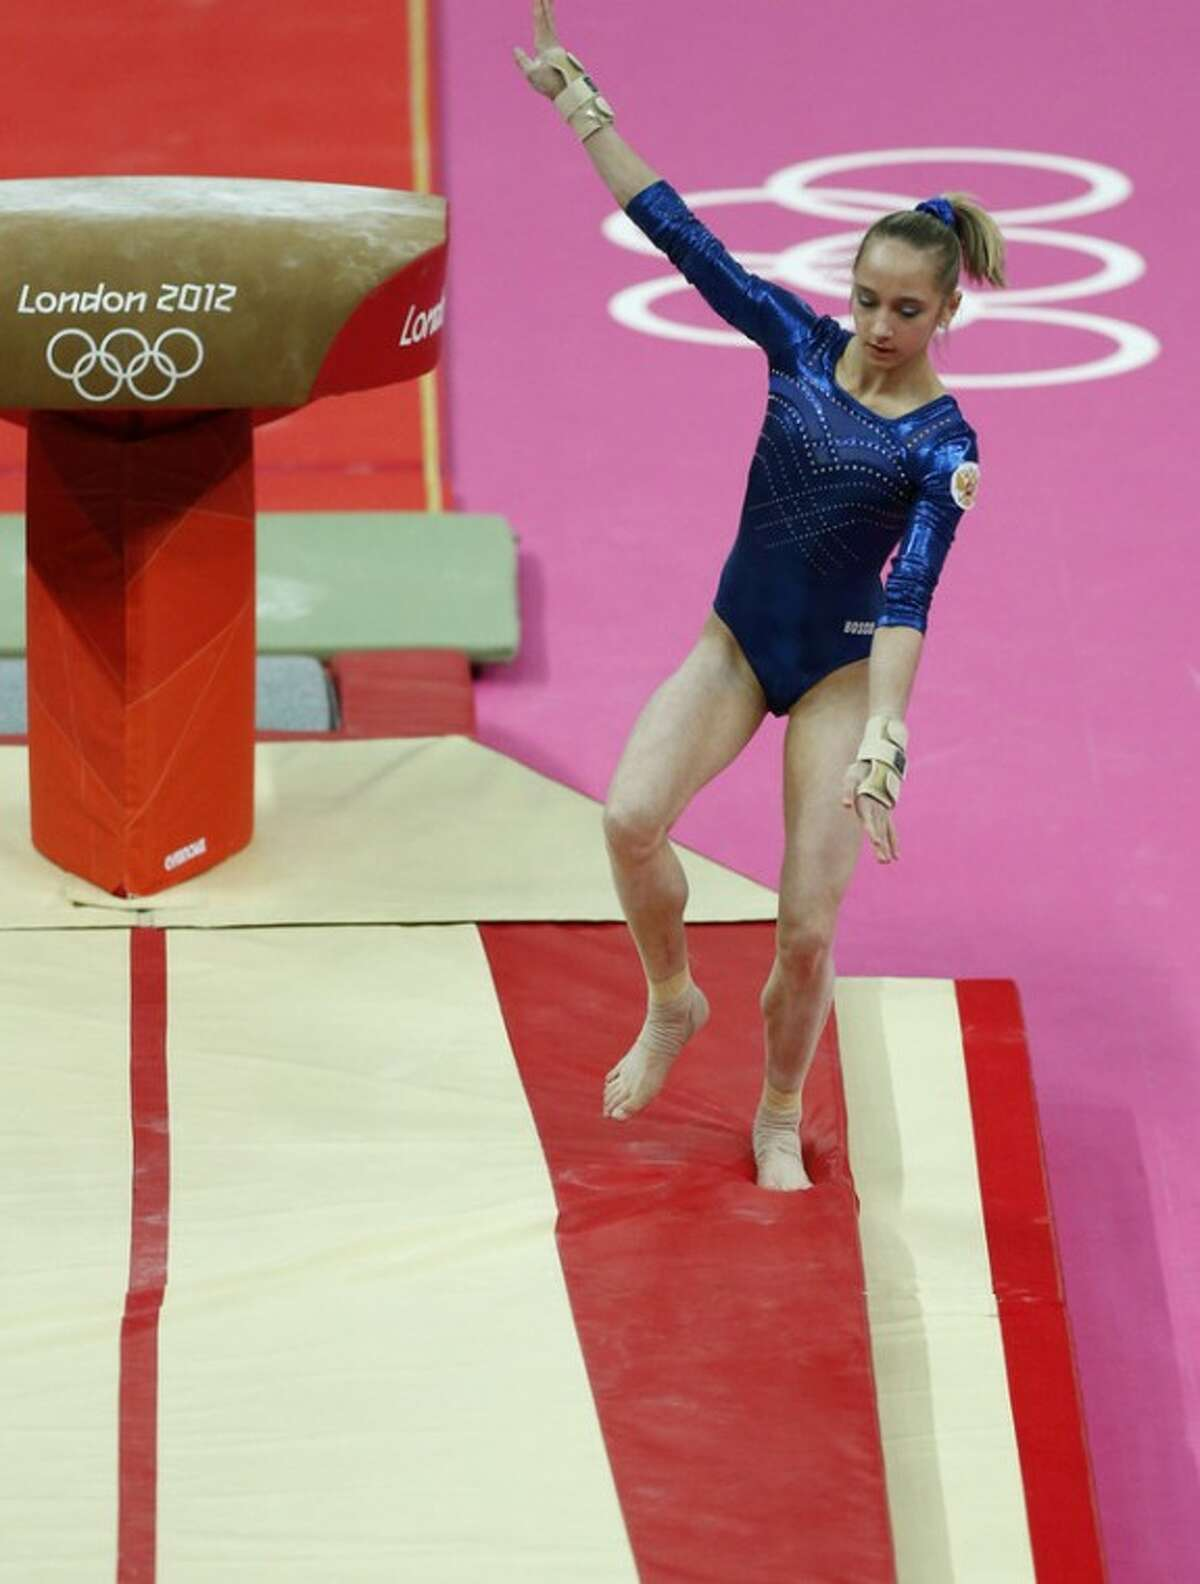 Russian gymnast Victoria Komova botches her dismount during the Artistic Gymnastics women's individual all-around competition at the 2012 Summer Olympics, Thursday, Aug. 2, 2012, in London. (AP Photo/Matt Dunham)